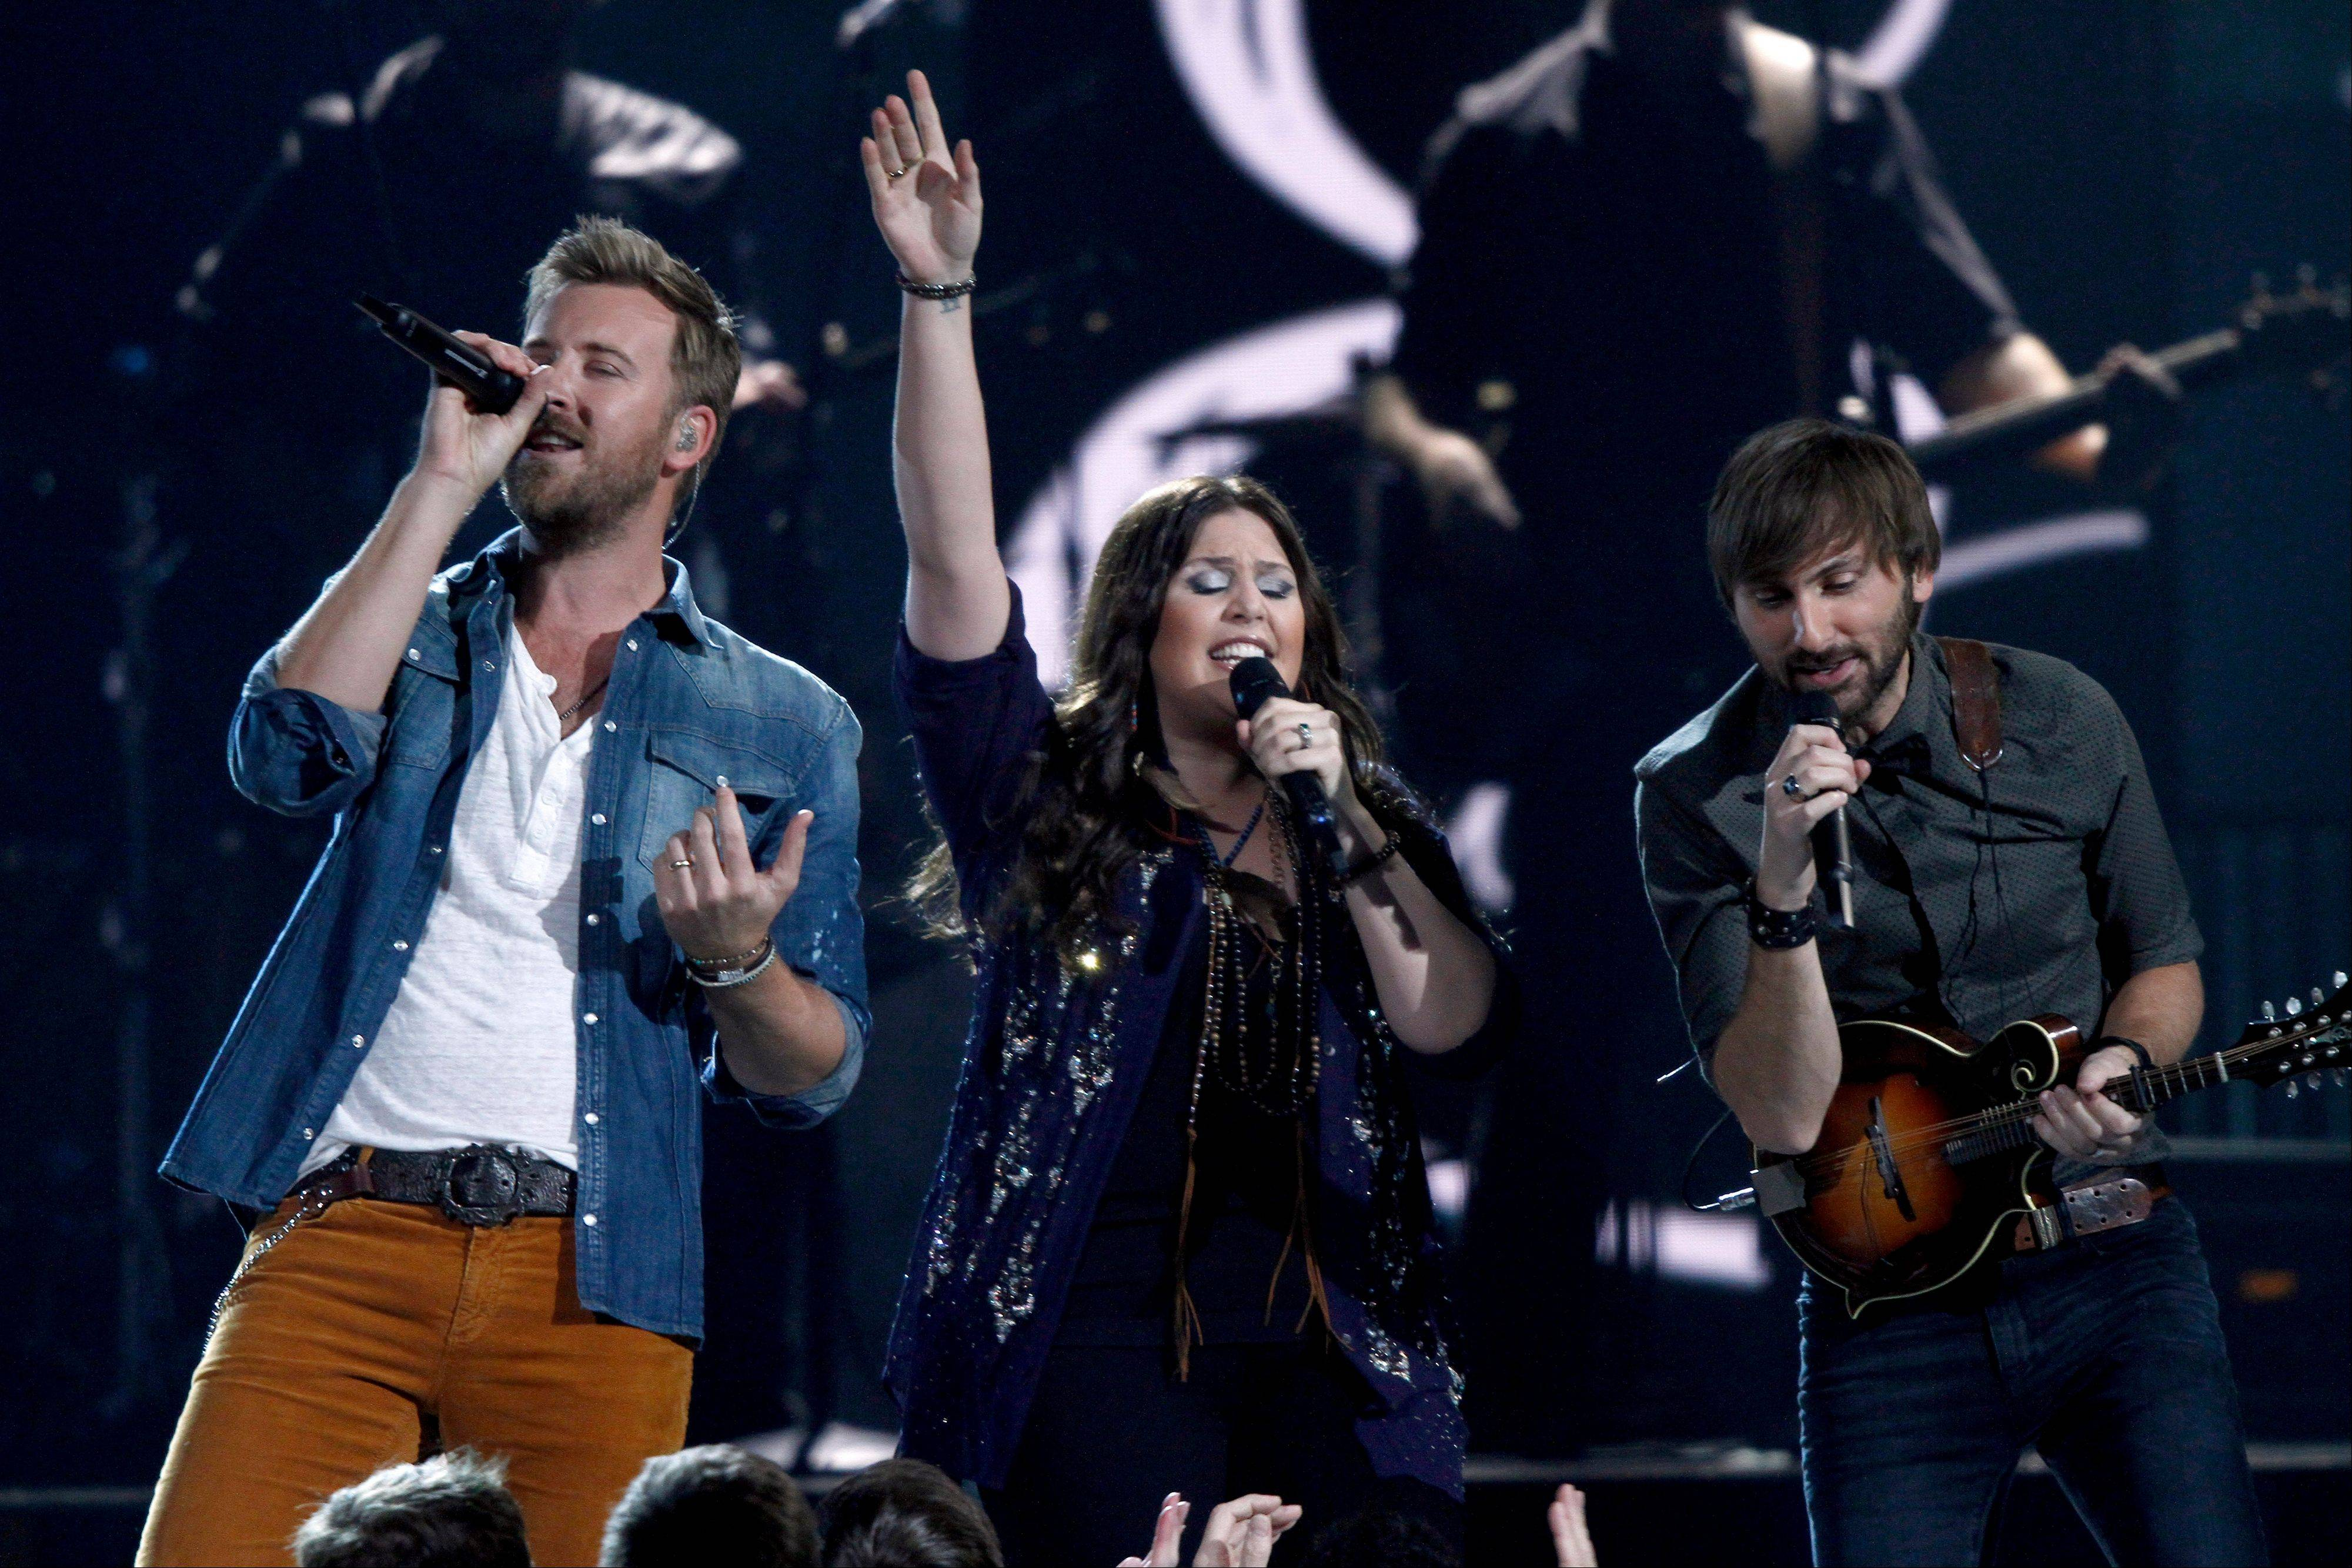 Lady Antbellum, from left, Charles Kelley, Hillary Scott, and Dave Haywood, perform